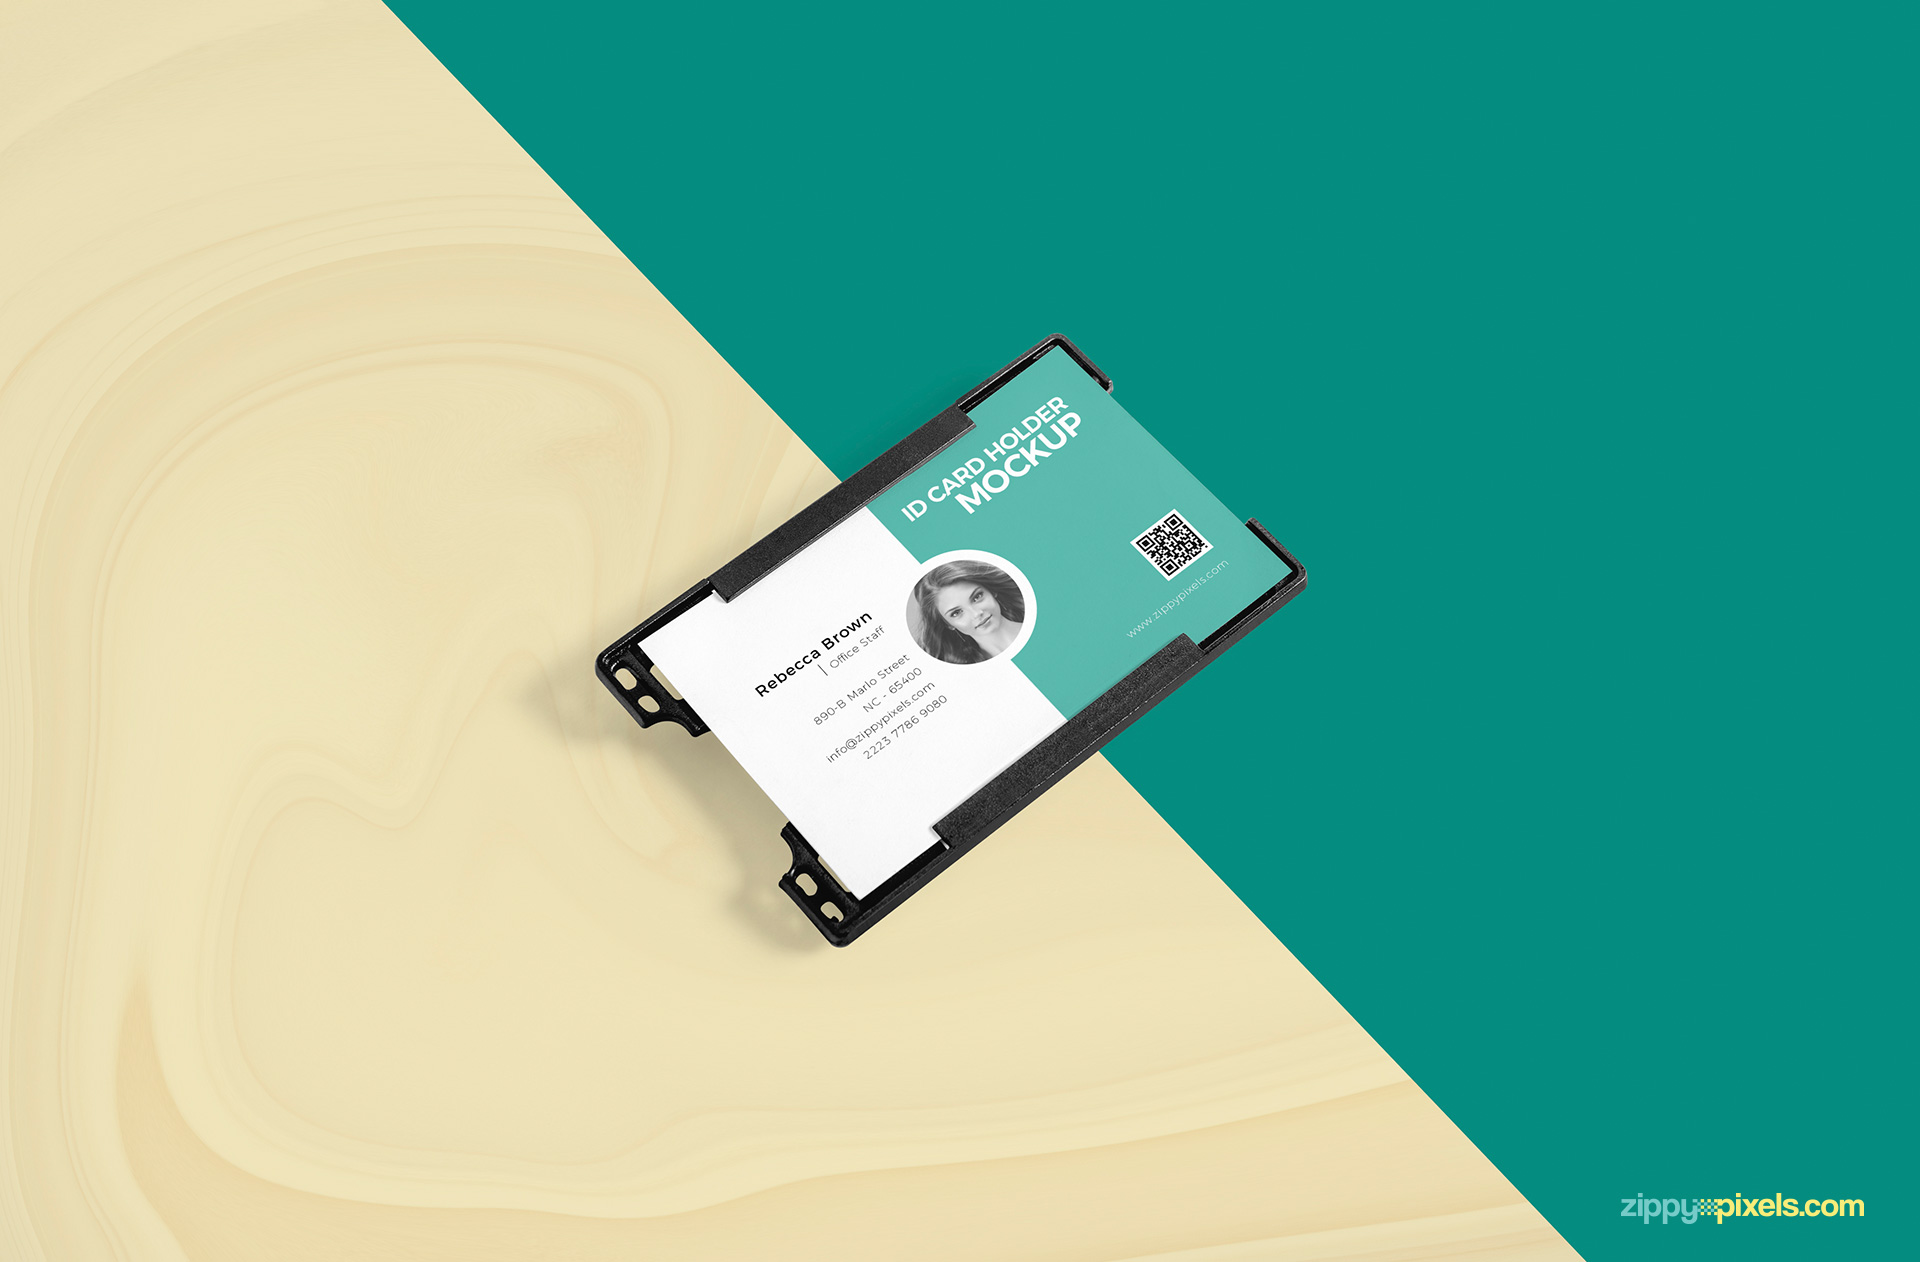 Id card holder mockup laying on customizable background